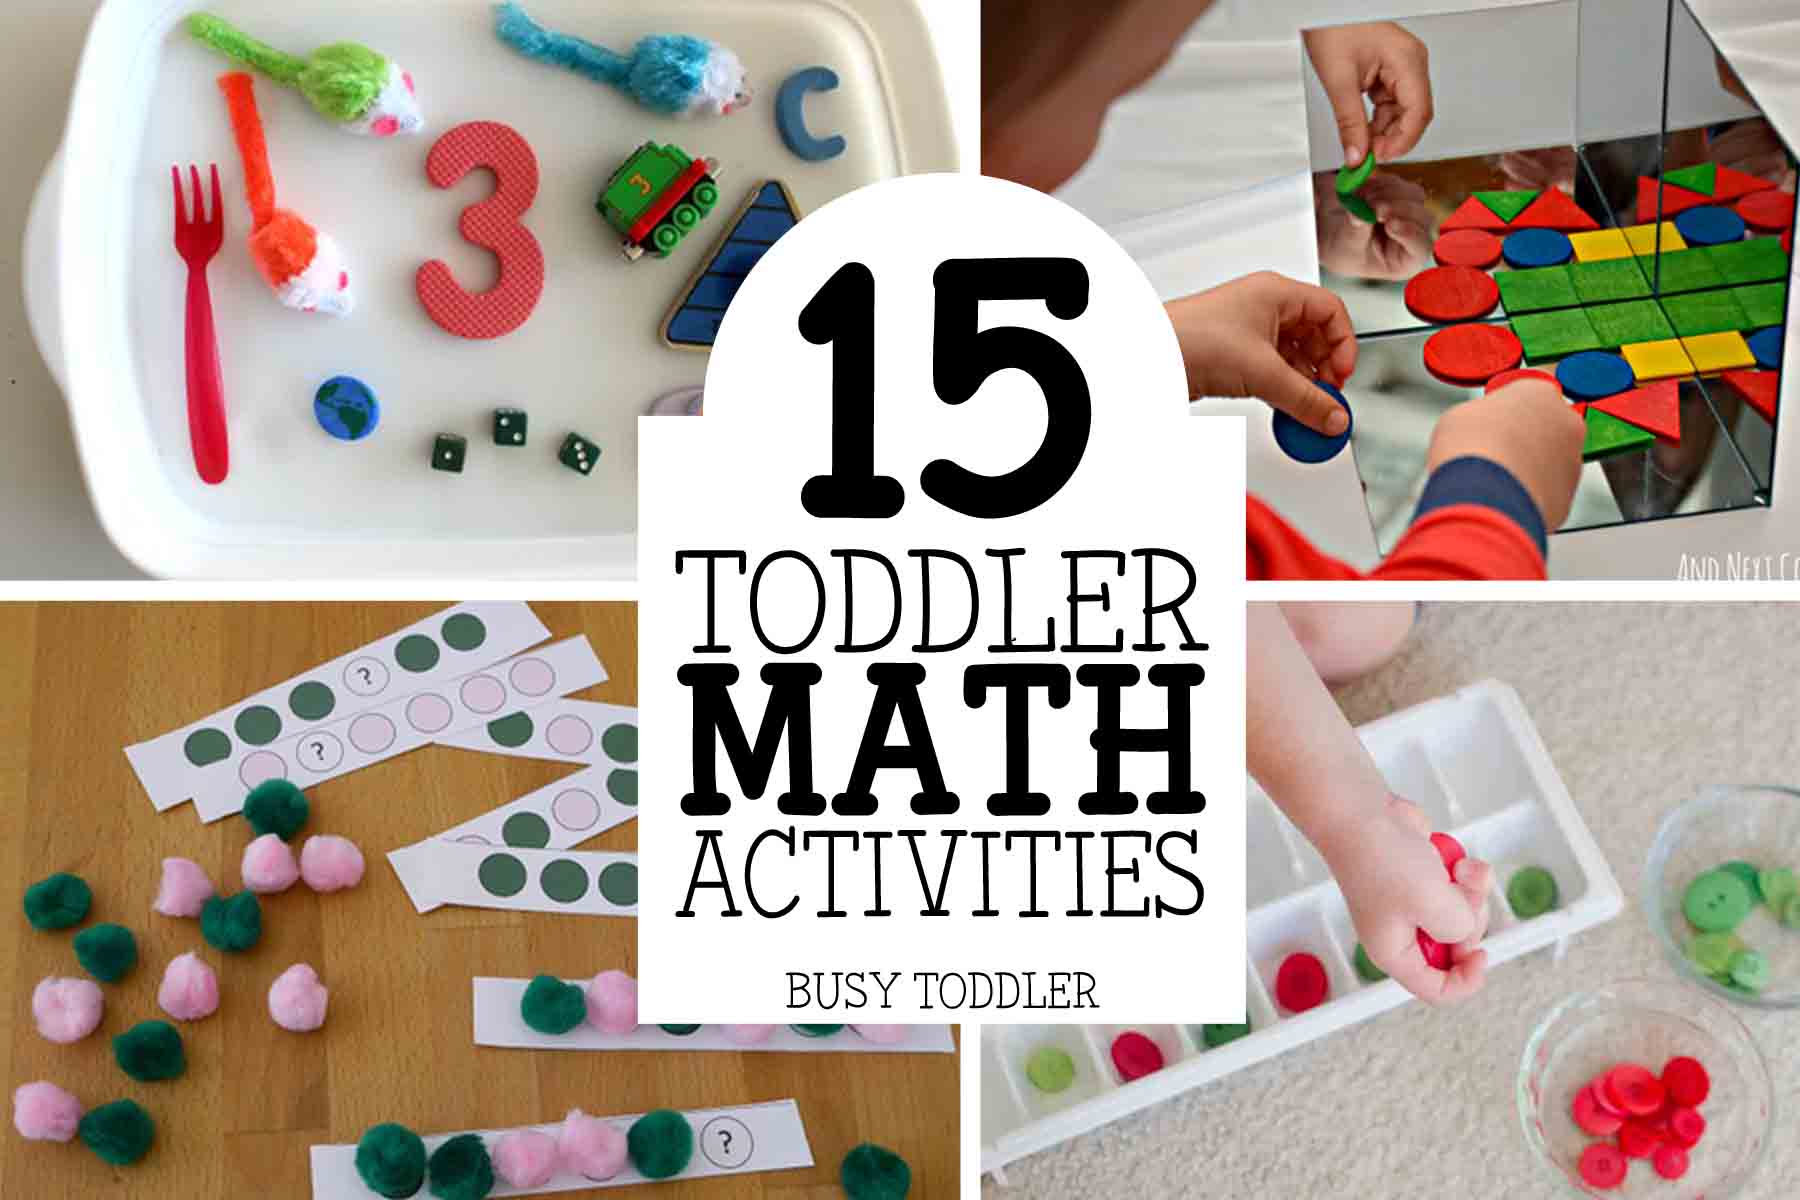 TODDLER MATH ACTIVITIES: 15 easy toddler math activities perfect for introducing concepts; toddler and preschool math